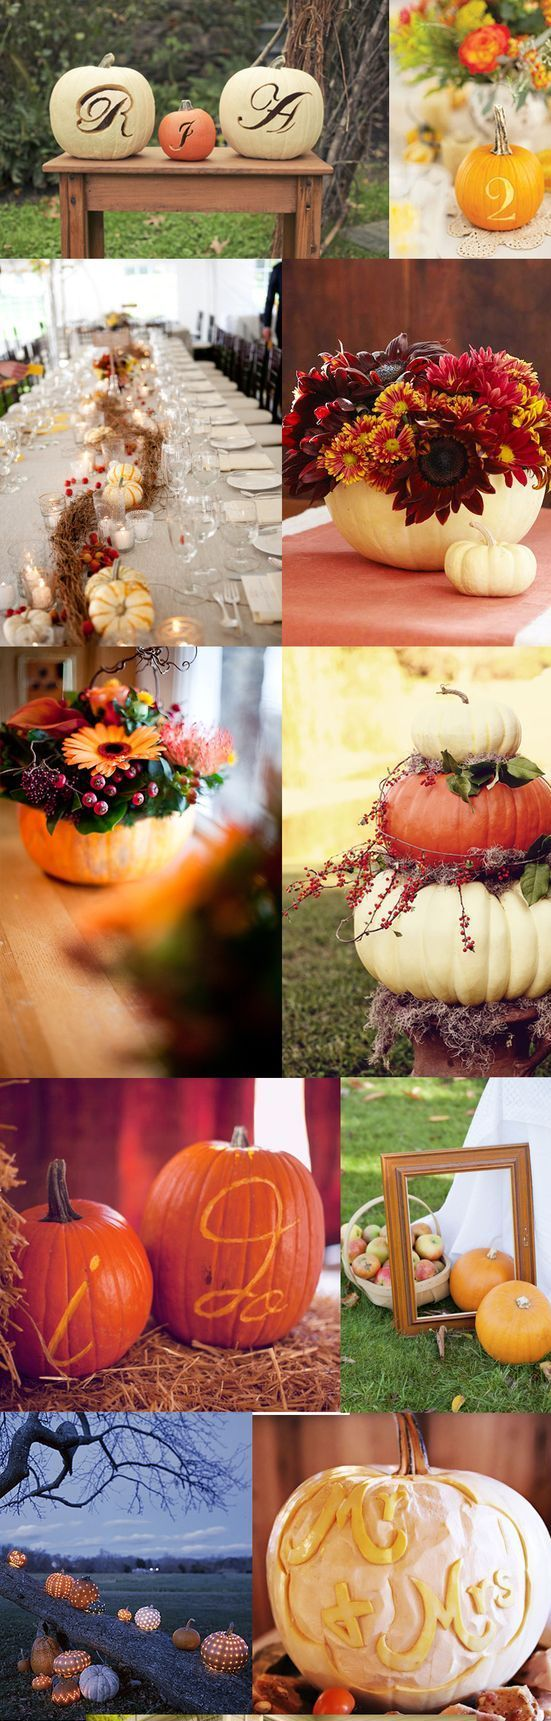 pumpkin wedding ideas / http://www.himisspuff.com/fall-pumpkins-wedding-decor-ideas/